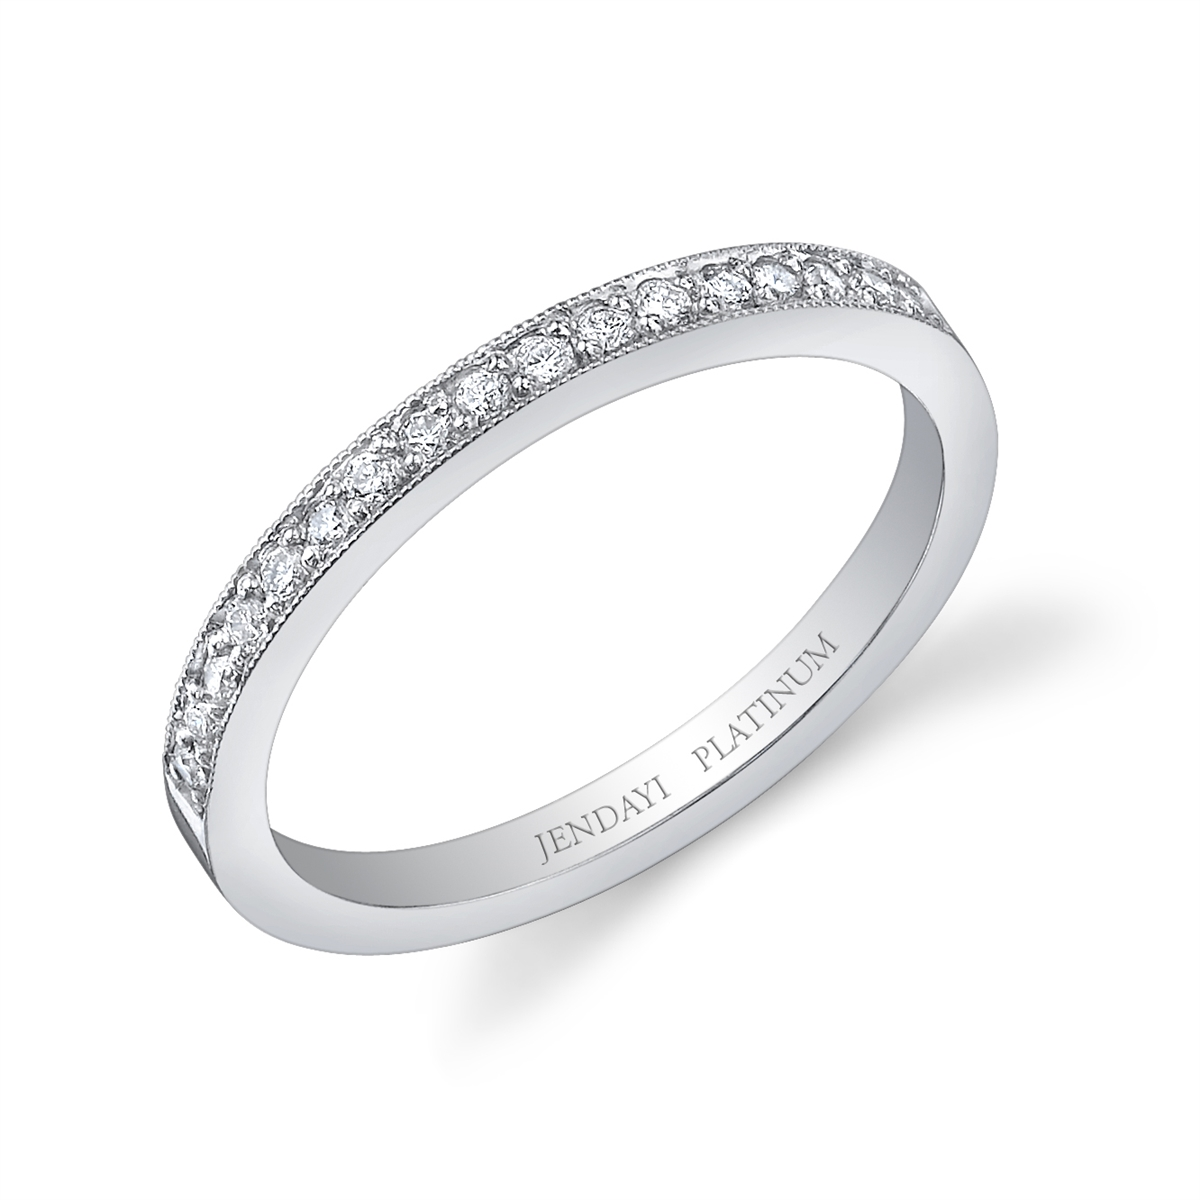 wg band rings diamond wedding product main accents bands milgrain white gold with